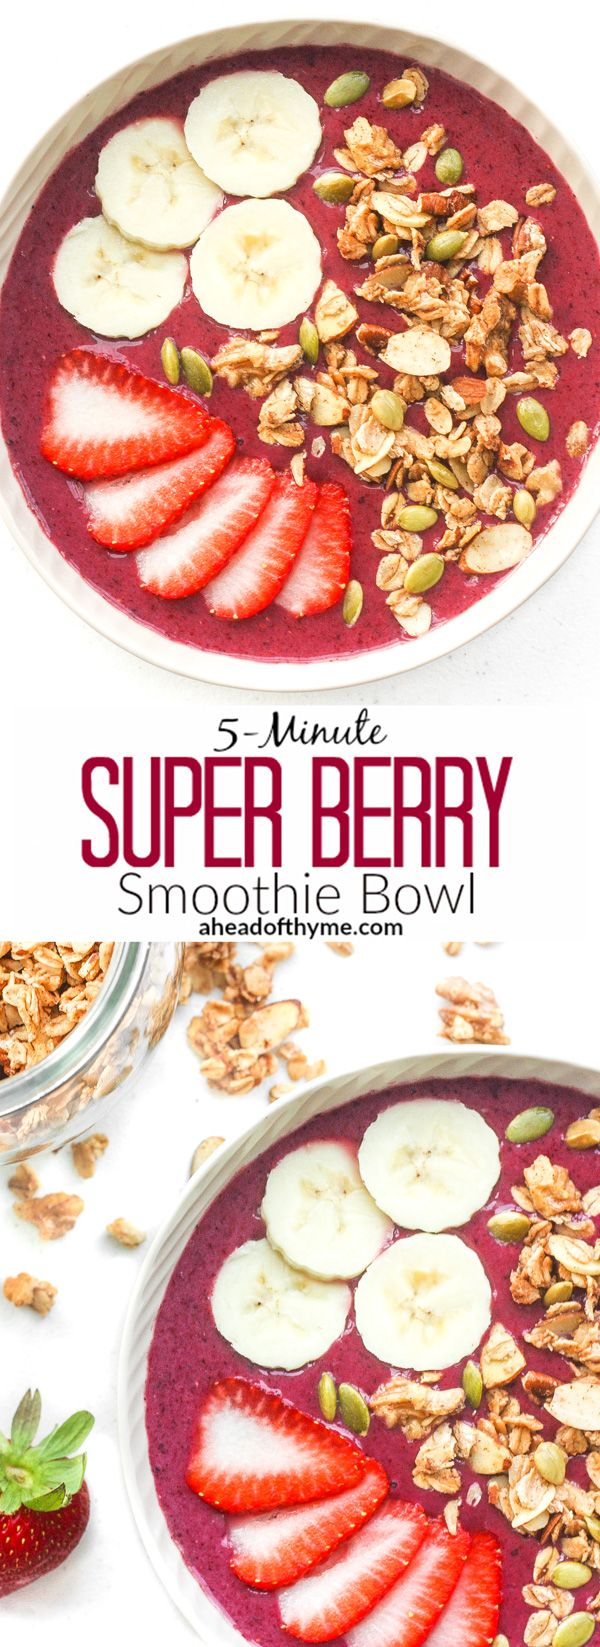 5-Minute Super Berry Smoothie Bowl: Quick and easy, 5-minute super berry smoothie bowl is loaded with strawberries, raspberries, blueberries and banana and topped with customizable toppings. | aheadofthyme.com via @aheadofthyme